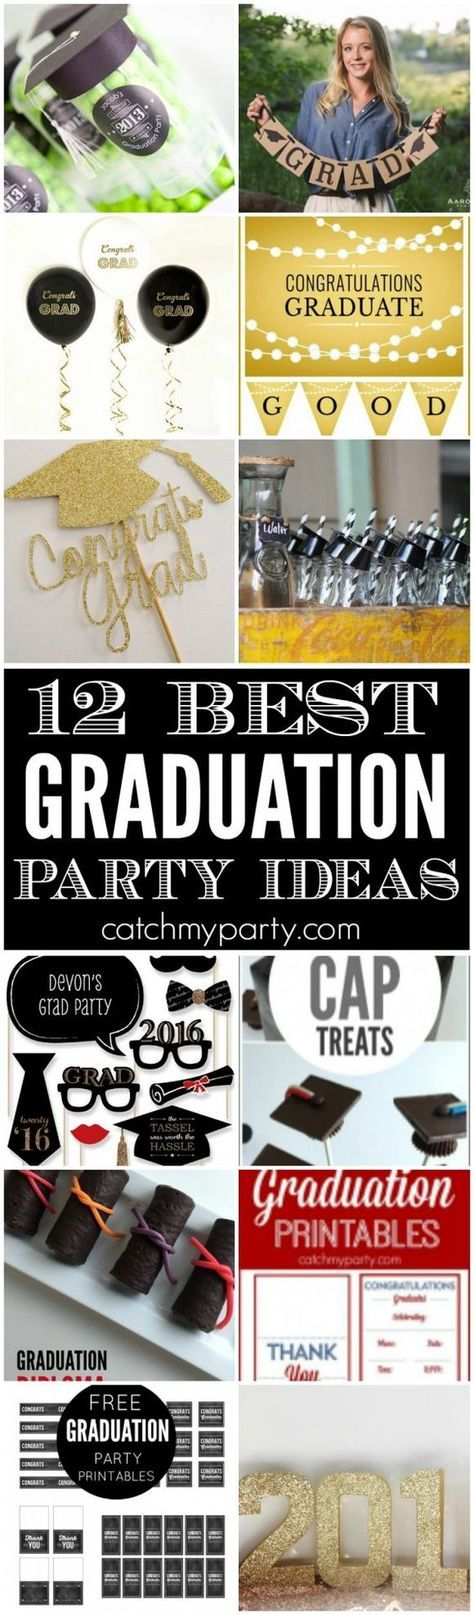 12 Best Graduation Party Ideas including decorations, treats, desserts, free party printables, party favors, and more! | Catchmyparty.com